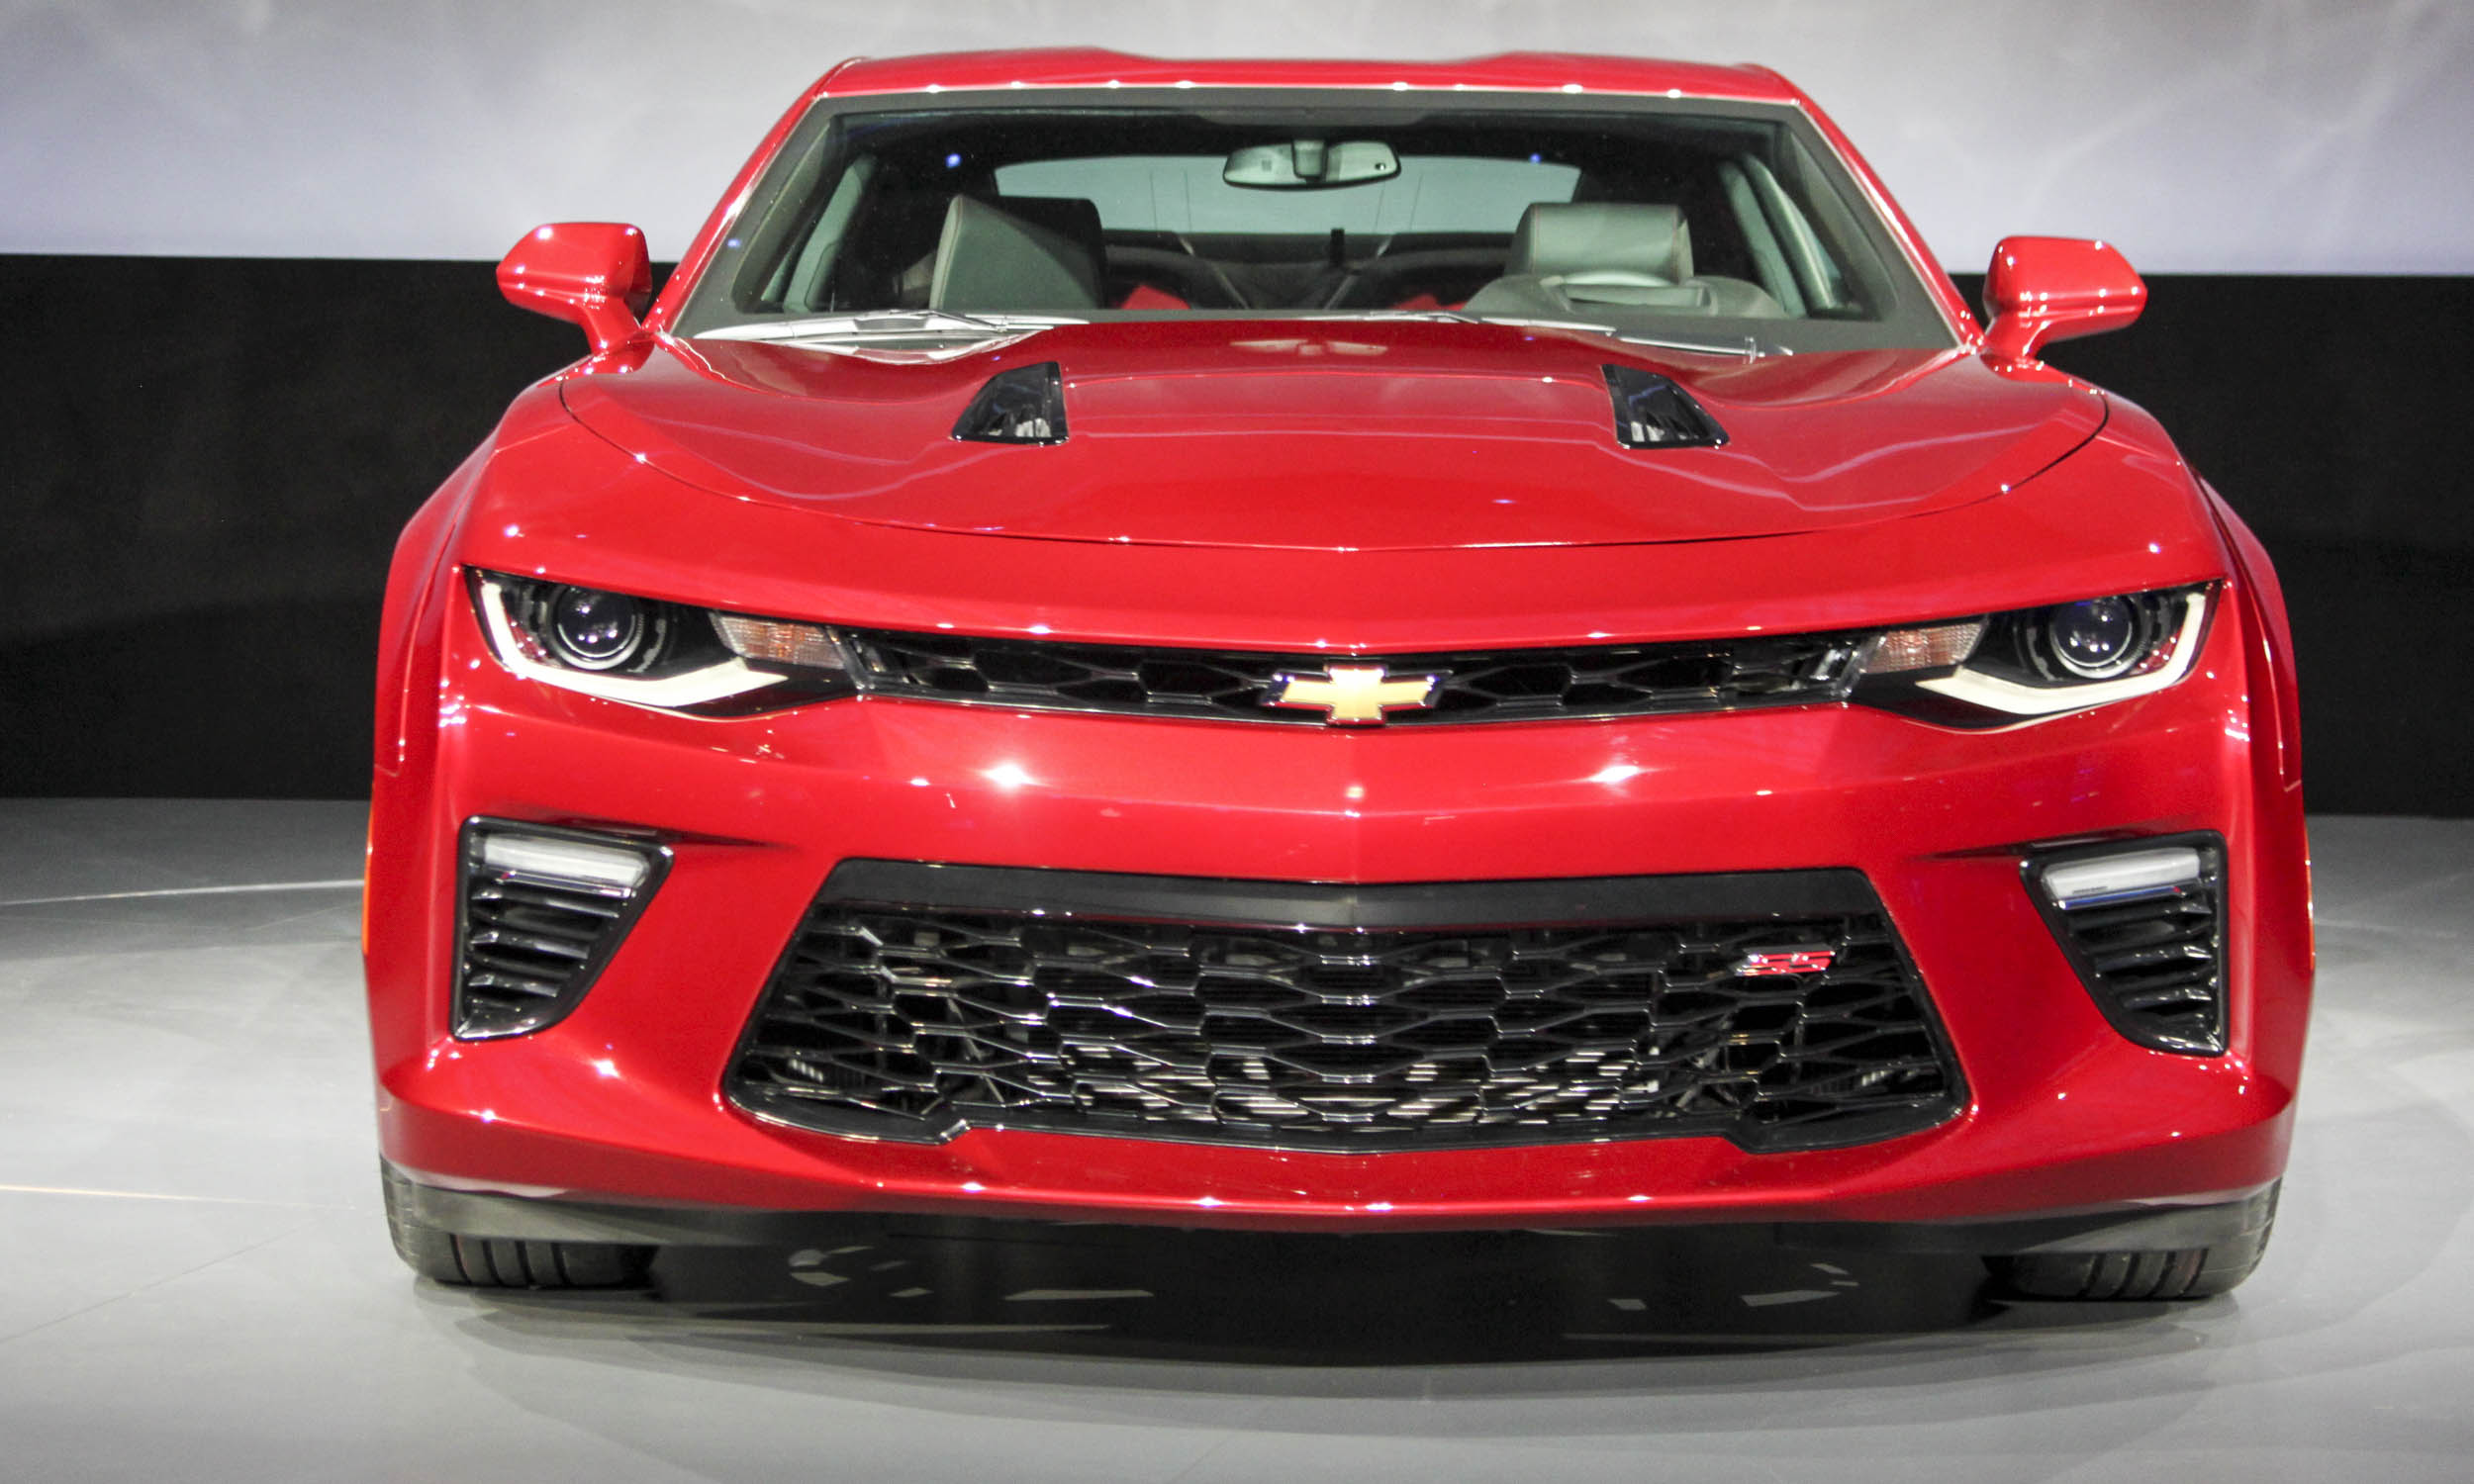 2016 chevrolet camaro ss front end design 6292 cars performance reviews and test drive. Black Bedroom Furniture Sets. Home Design Ideas